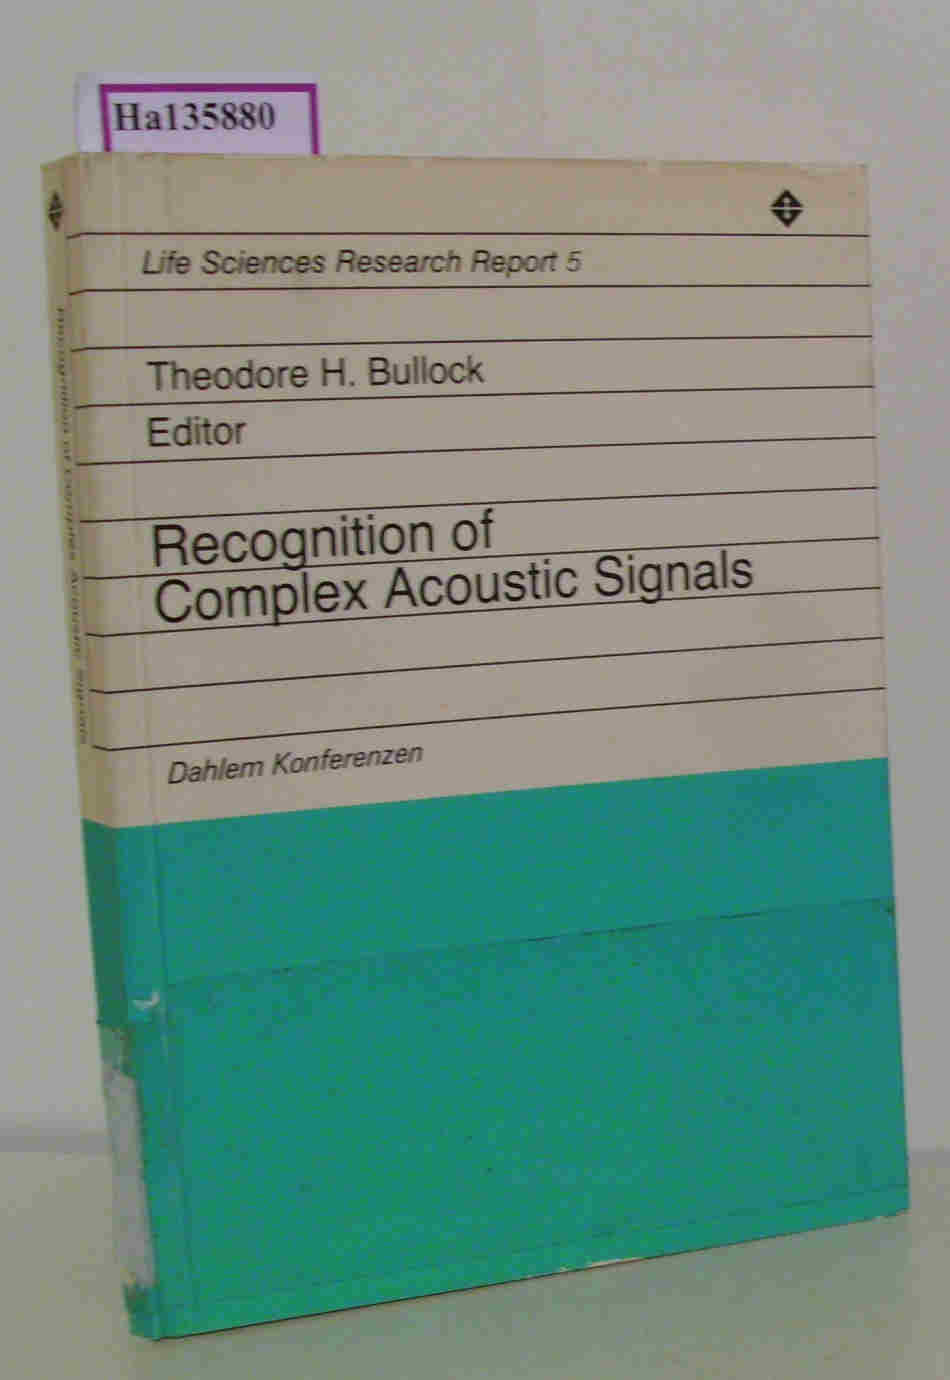 Recognition of Complex Acoustic Signals. Report of the Dahlem Workshop on  Recognition of Complex Acoustic Signals, Berlin 1976, September 27 to October 2. ( = Life Sciences Research Reports, 5) .